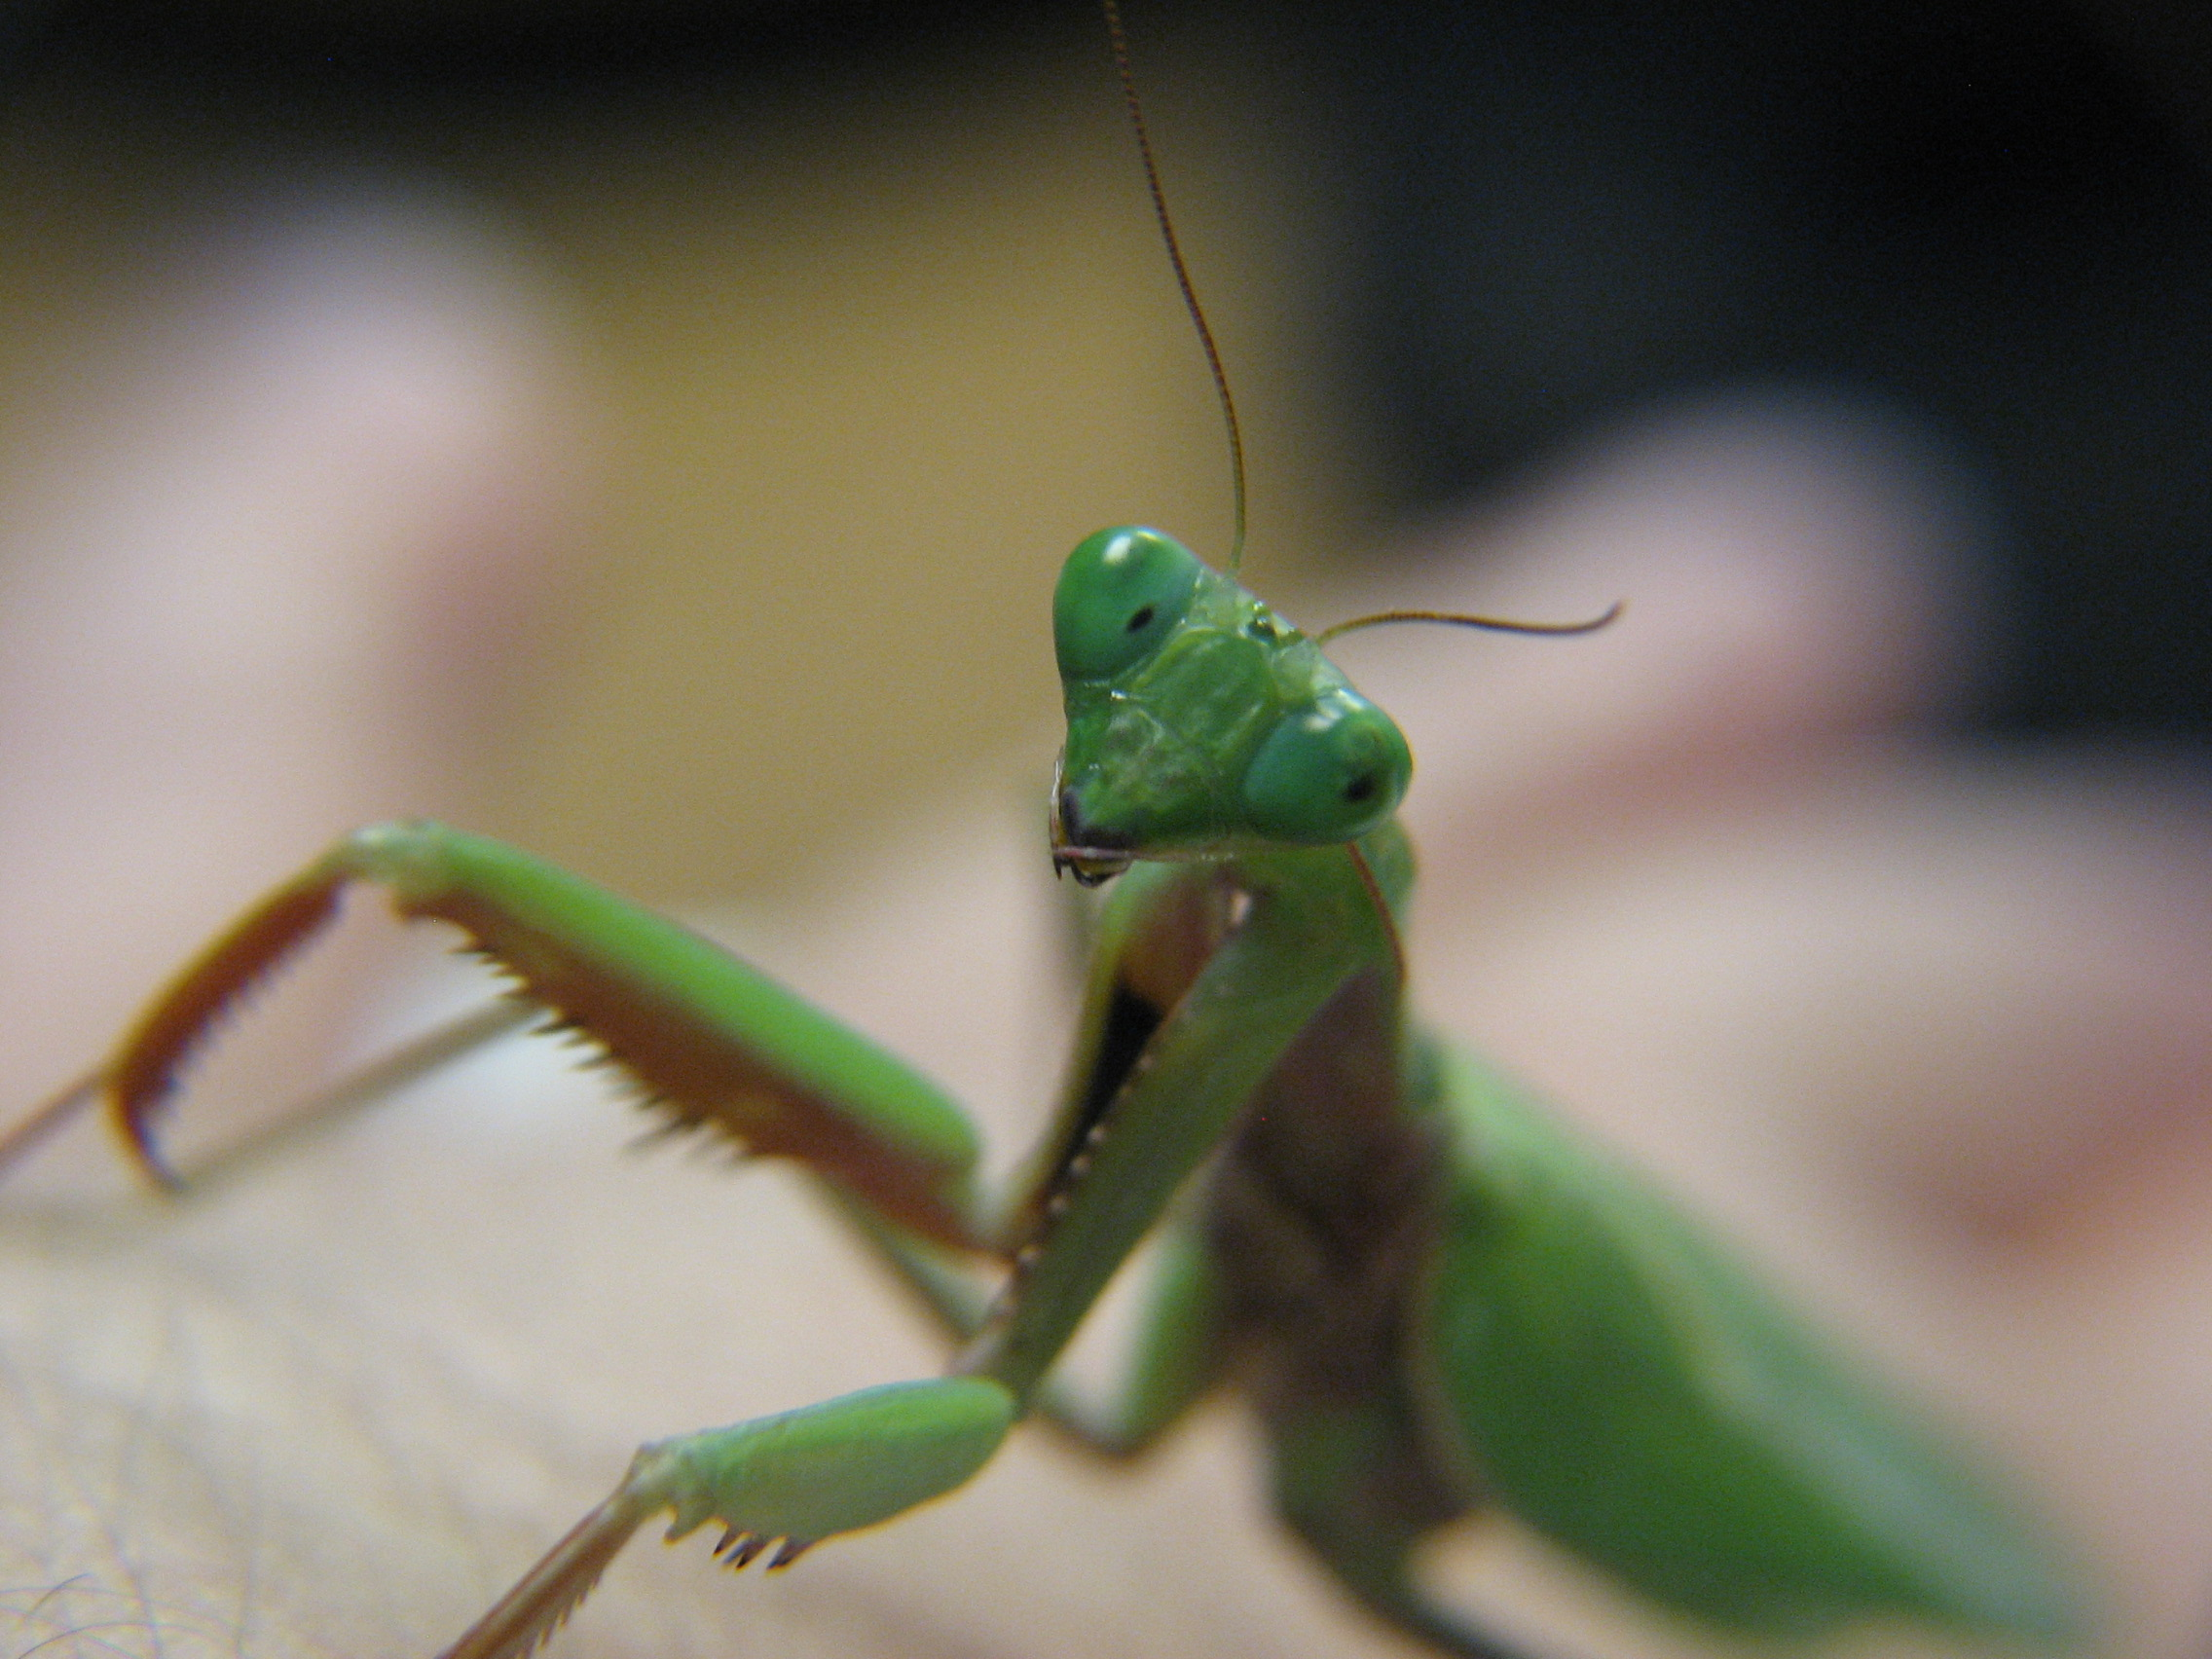 Preying Mantises